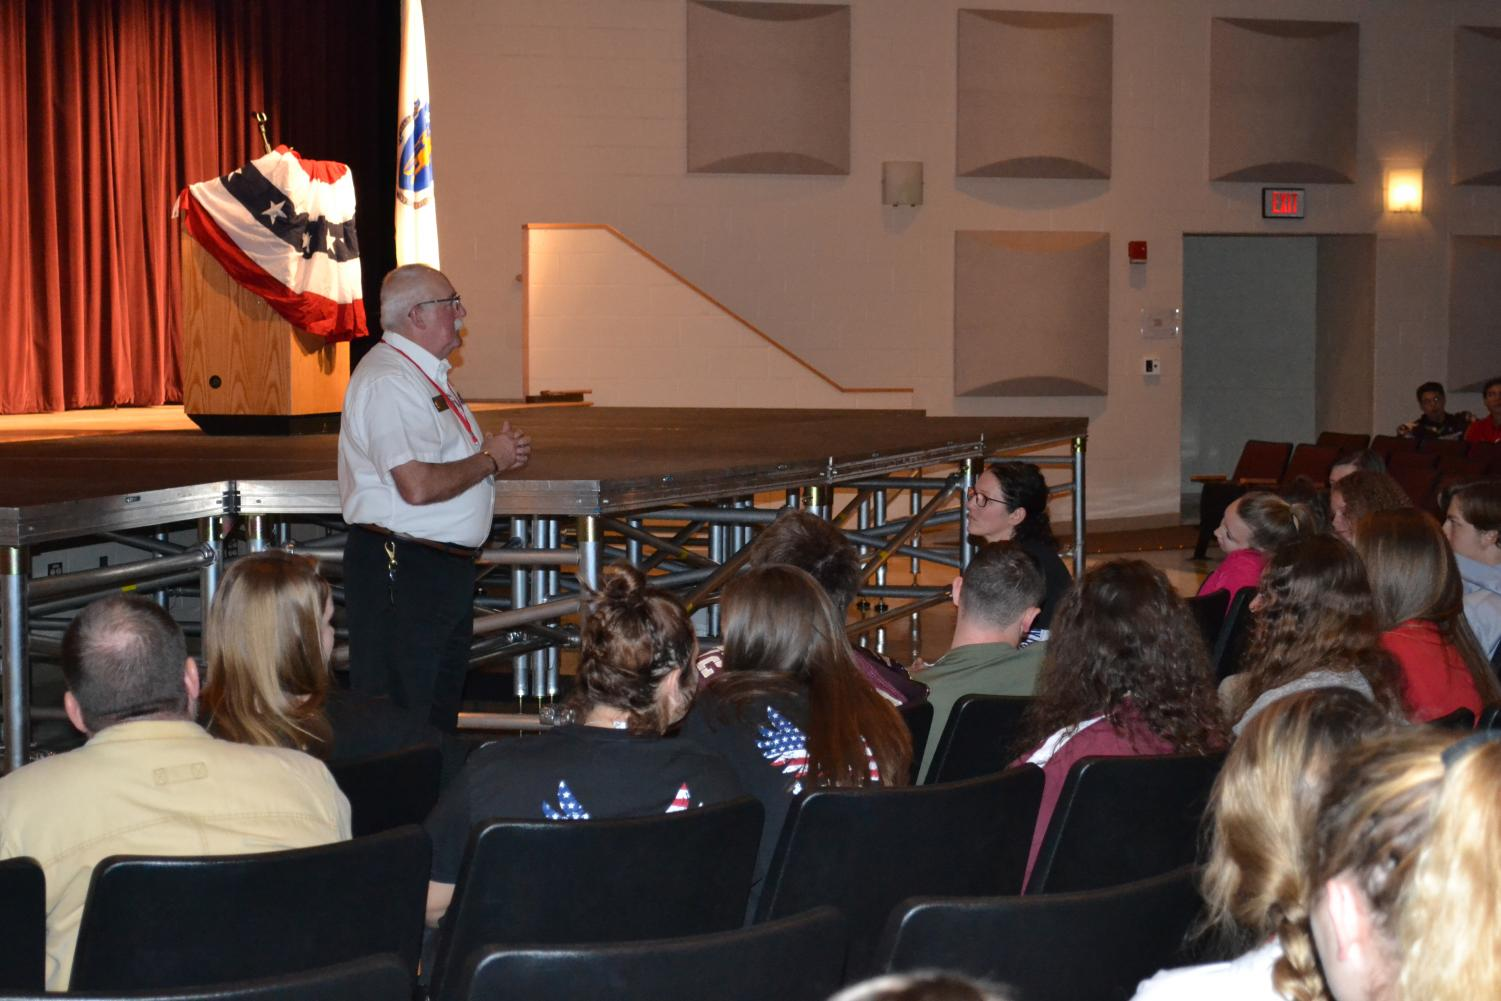 Students listen intently as veteran and Southborough resident Steve Whynot talks about his experience in the United States Armed Forces.